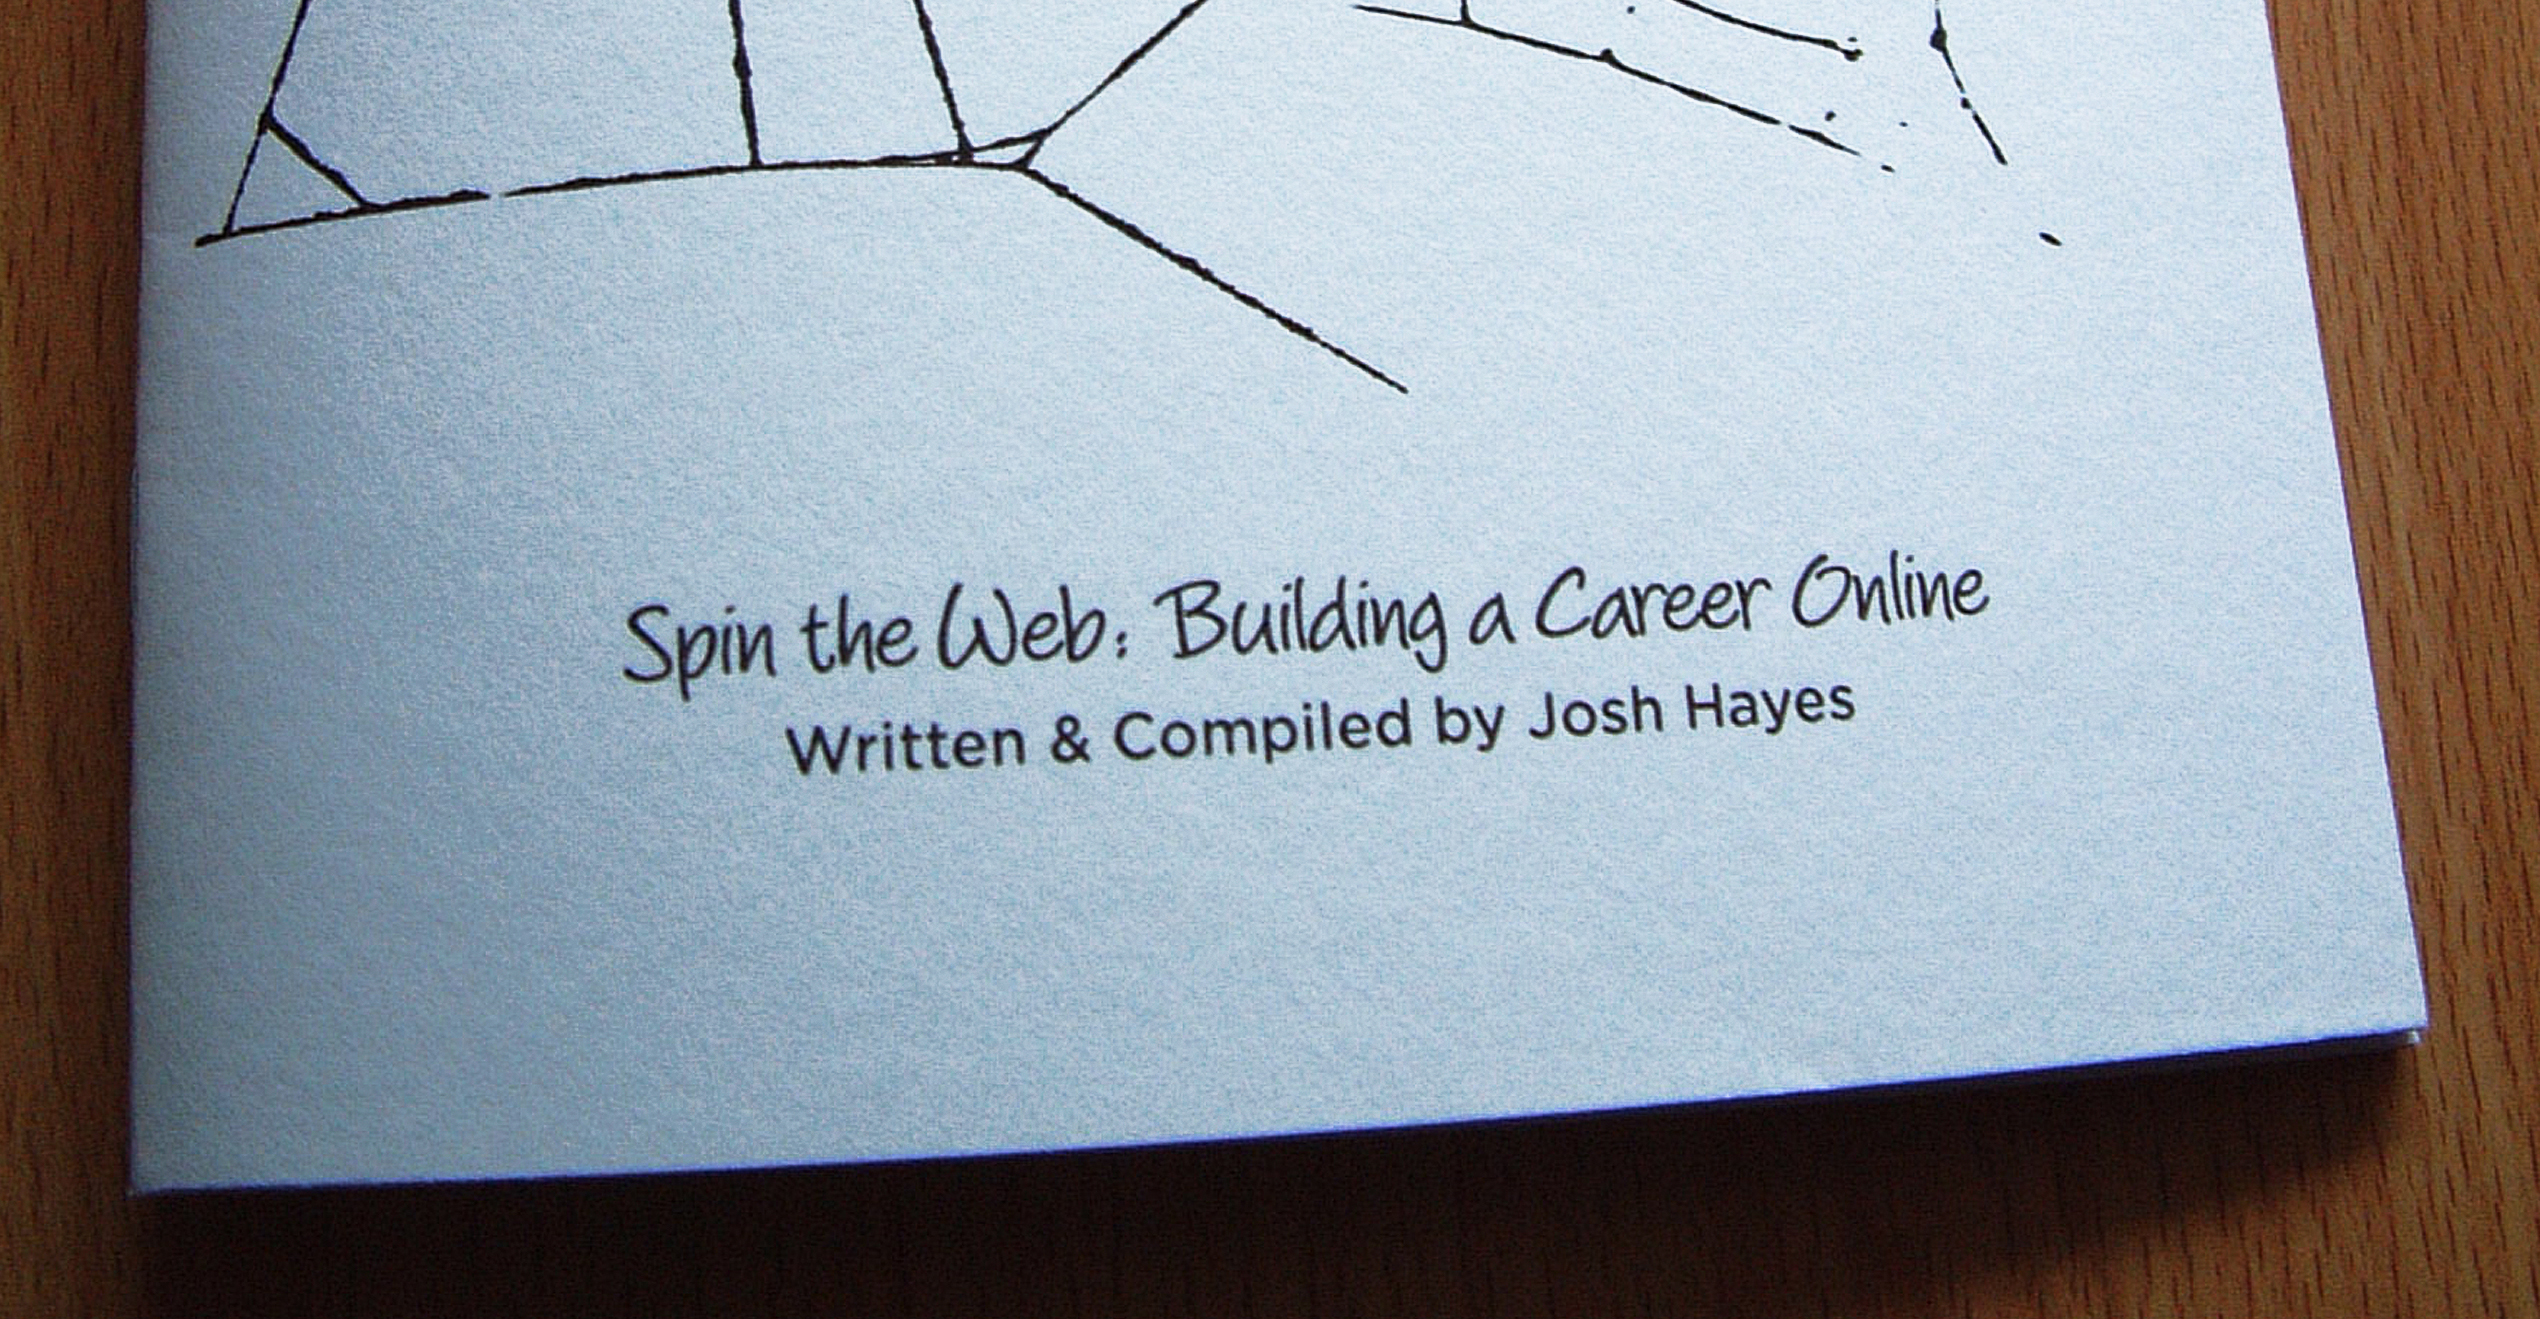 Spin the Web: Building a Career Online Written & Compiled by Josh Hayes